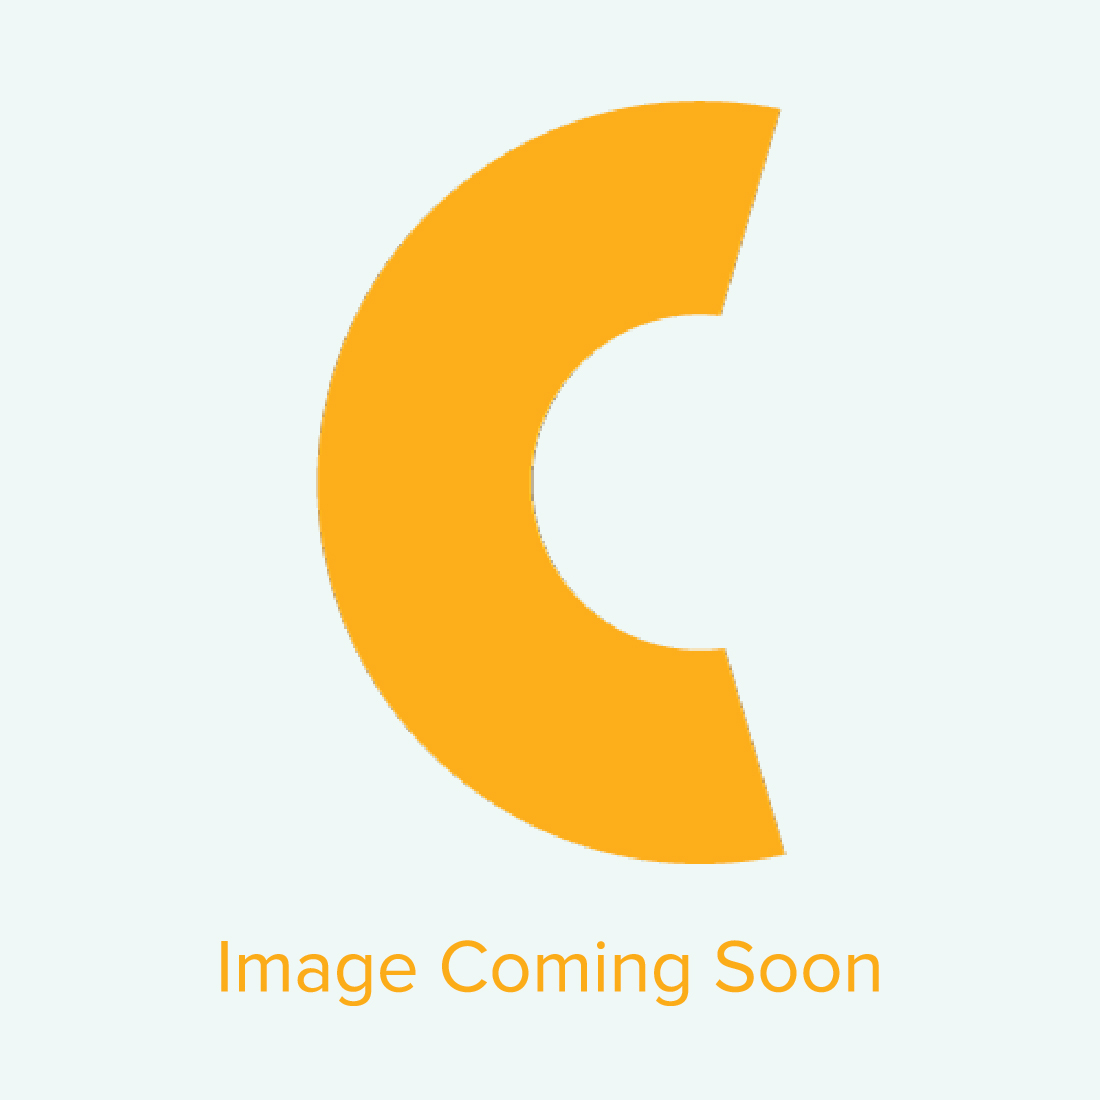 "Silhouette Temporary Tattoo Paper - 8.5 x 11"" (2 sheets)"